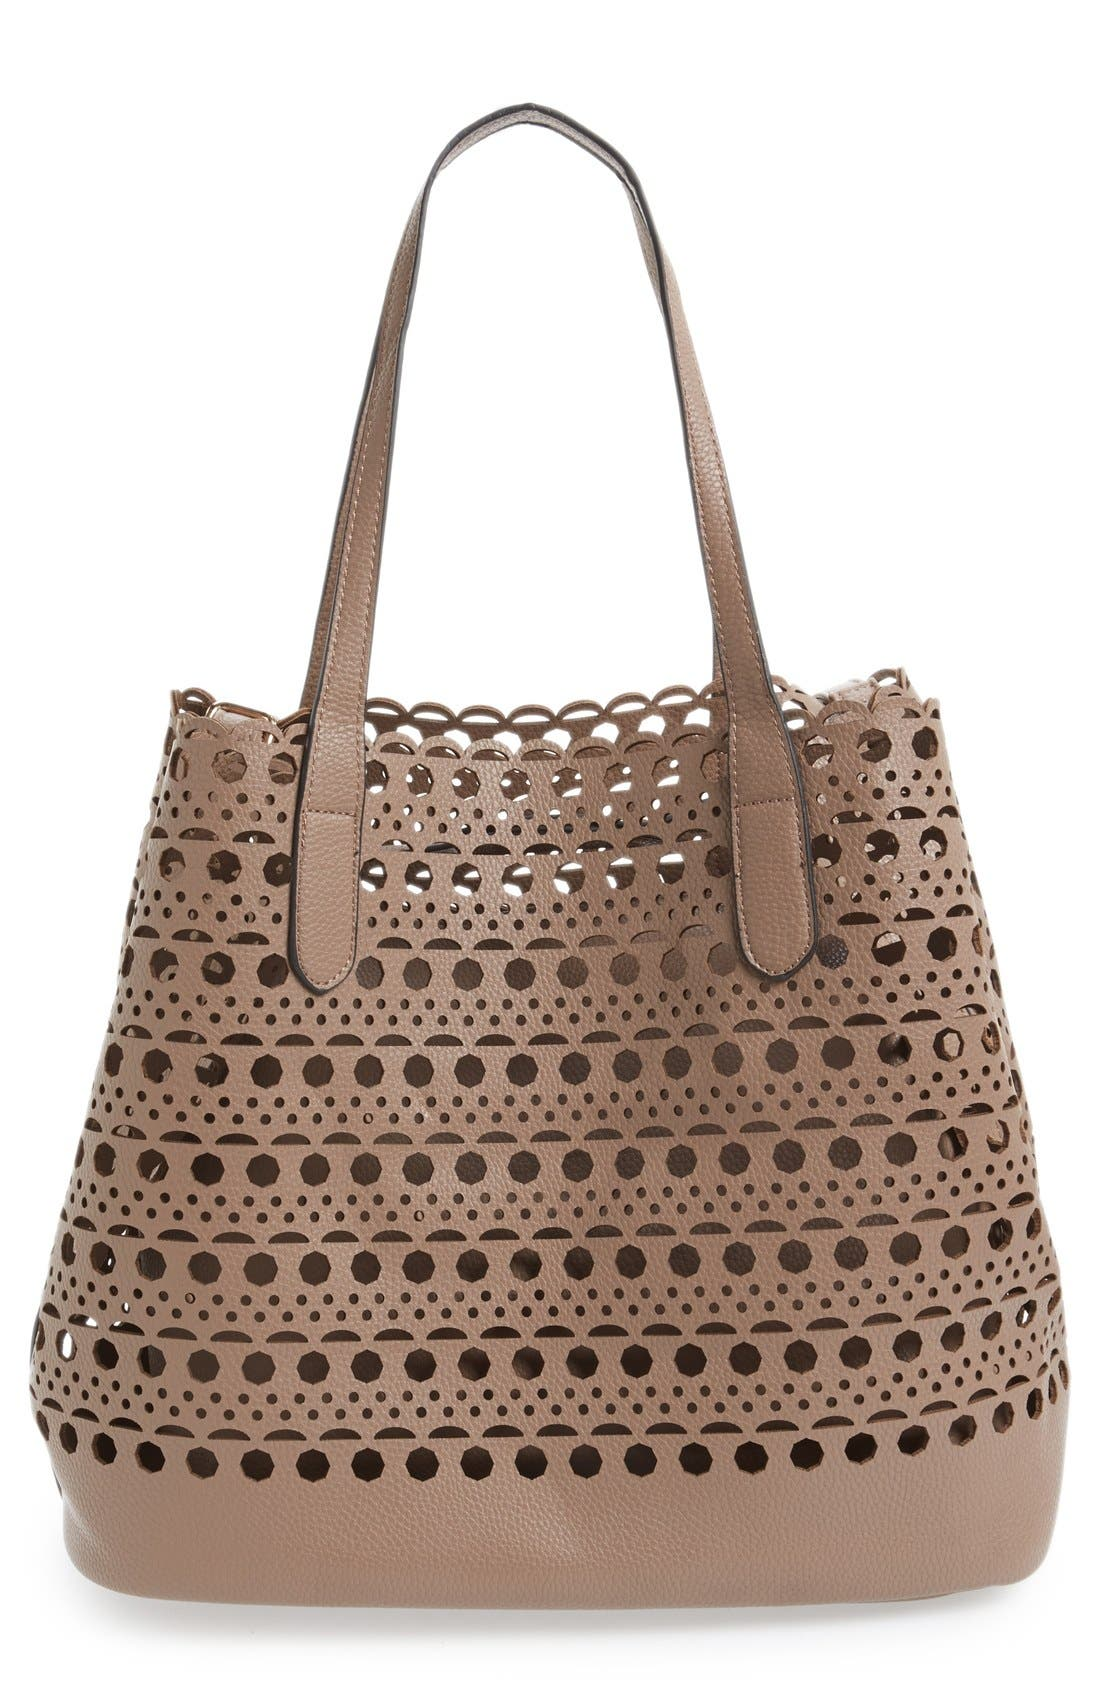 Alternate Image 1 Selected - Street Level Perforated Tote